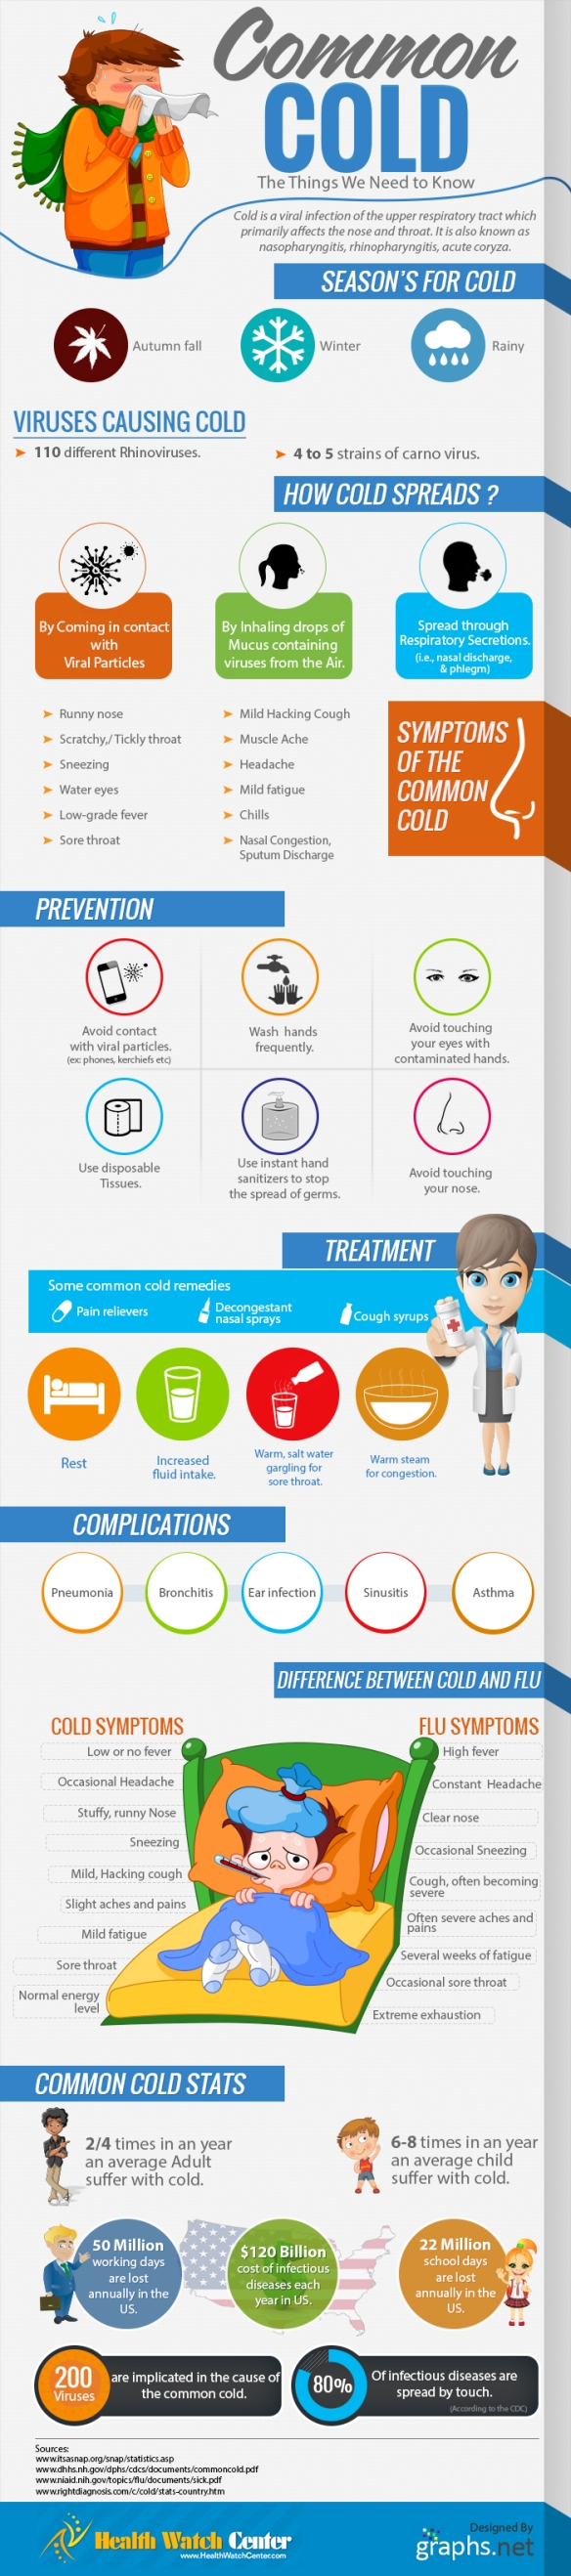 Infographic on the Common Cold